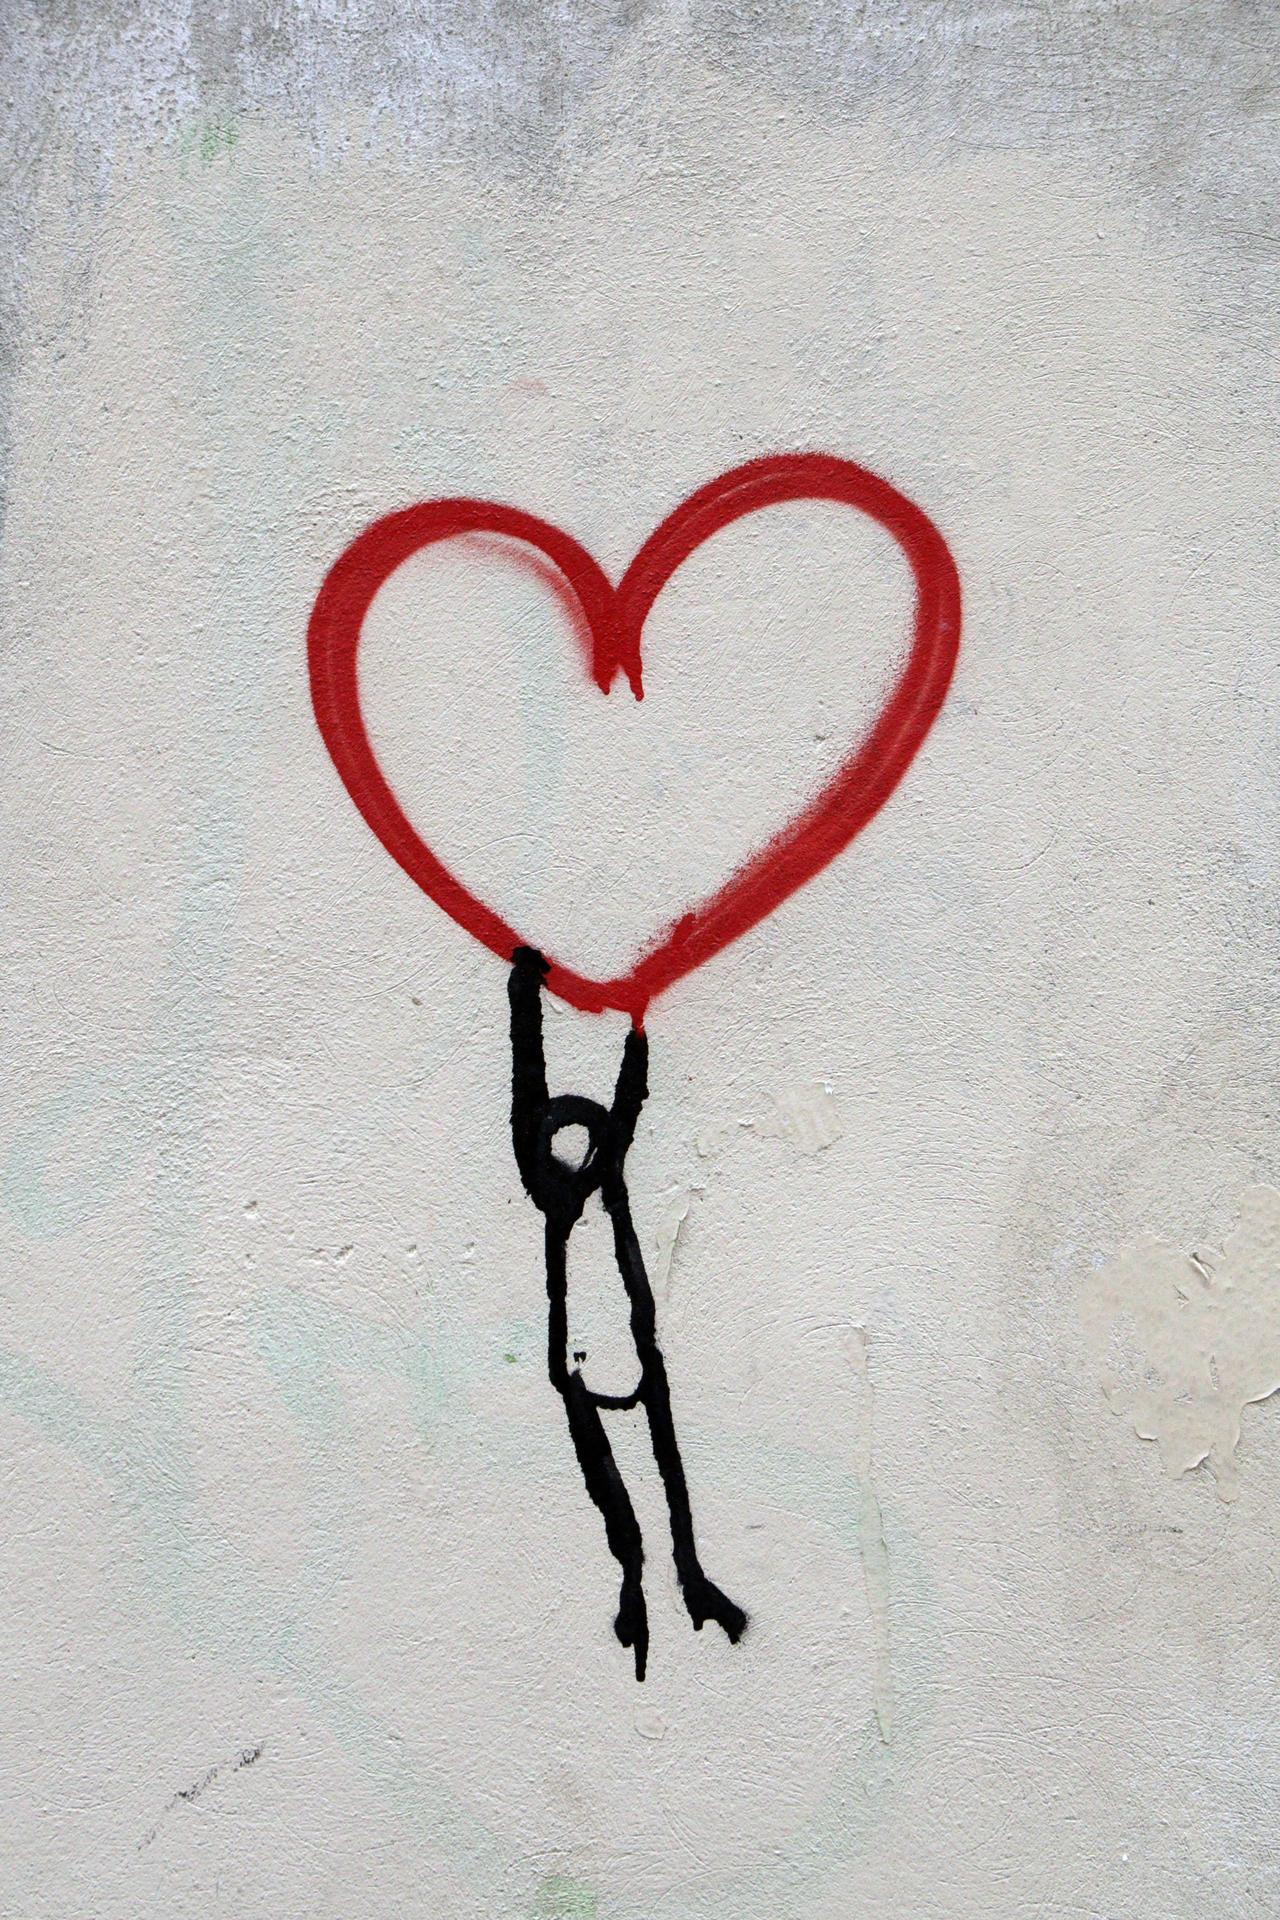 stick figure hanging from heart